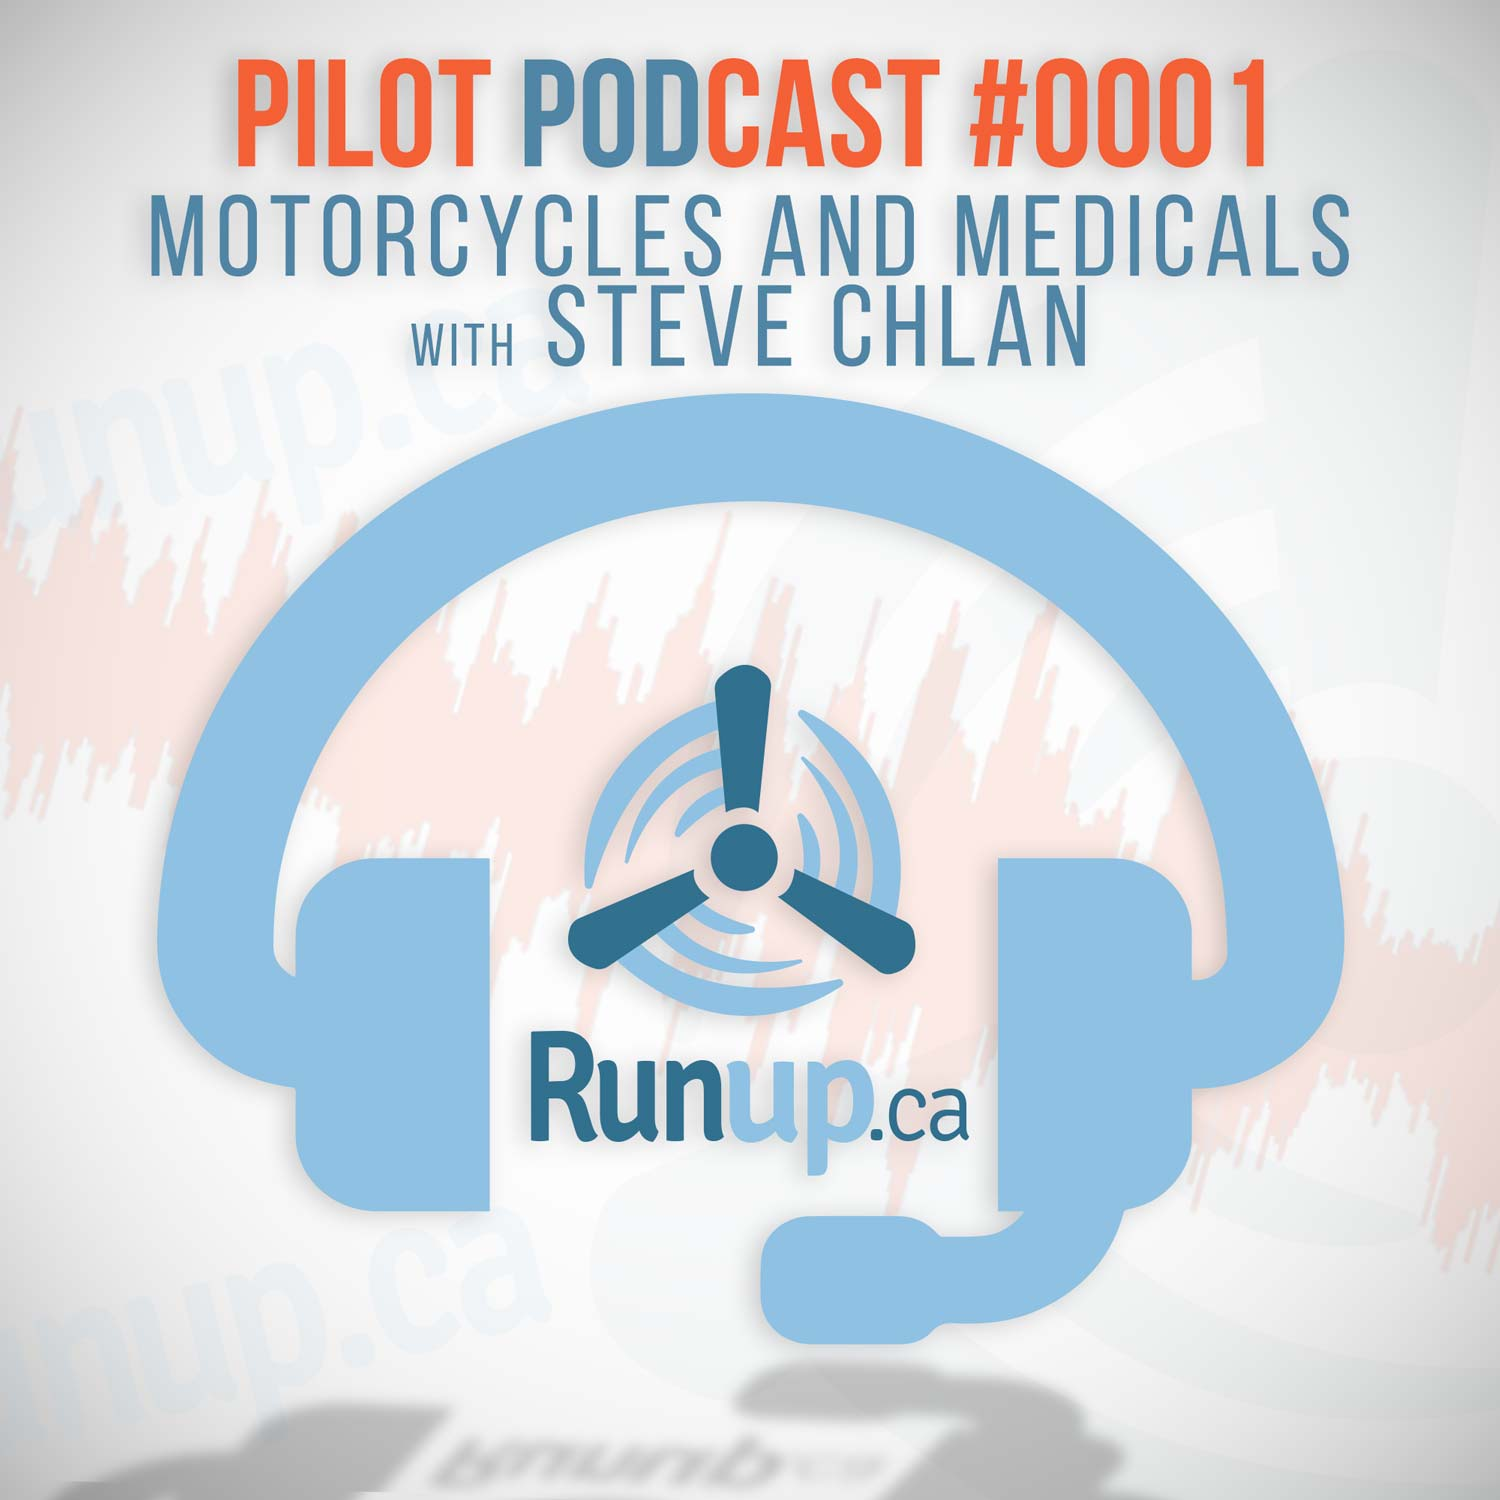 Pilot Podcast Motorcycles and Medicals with Steve Chlan